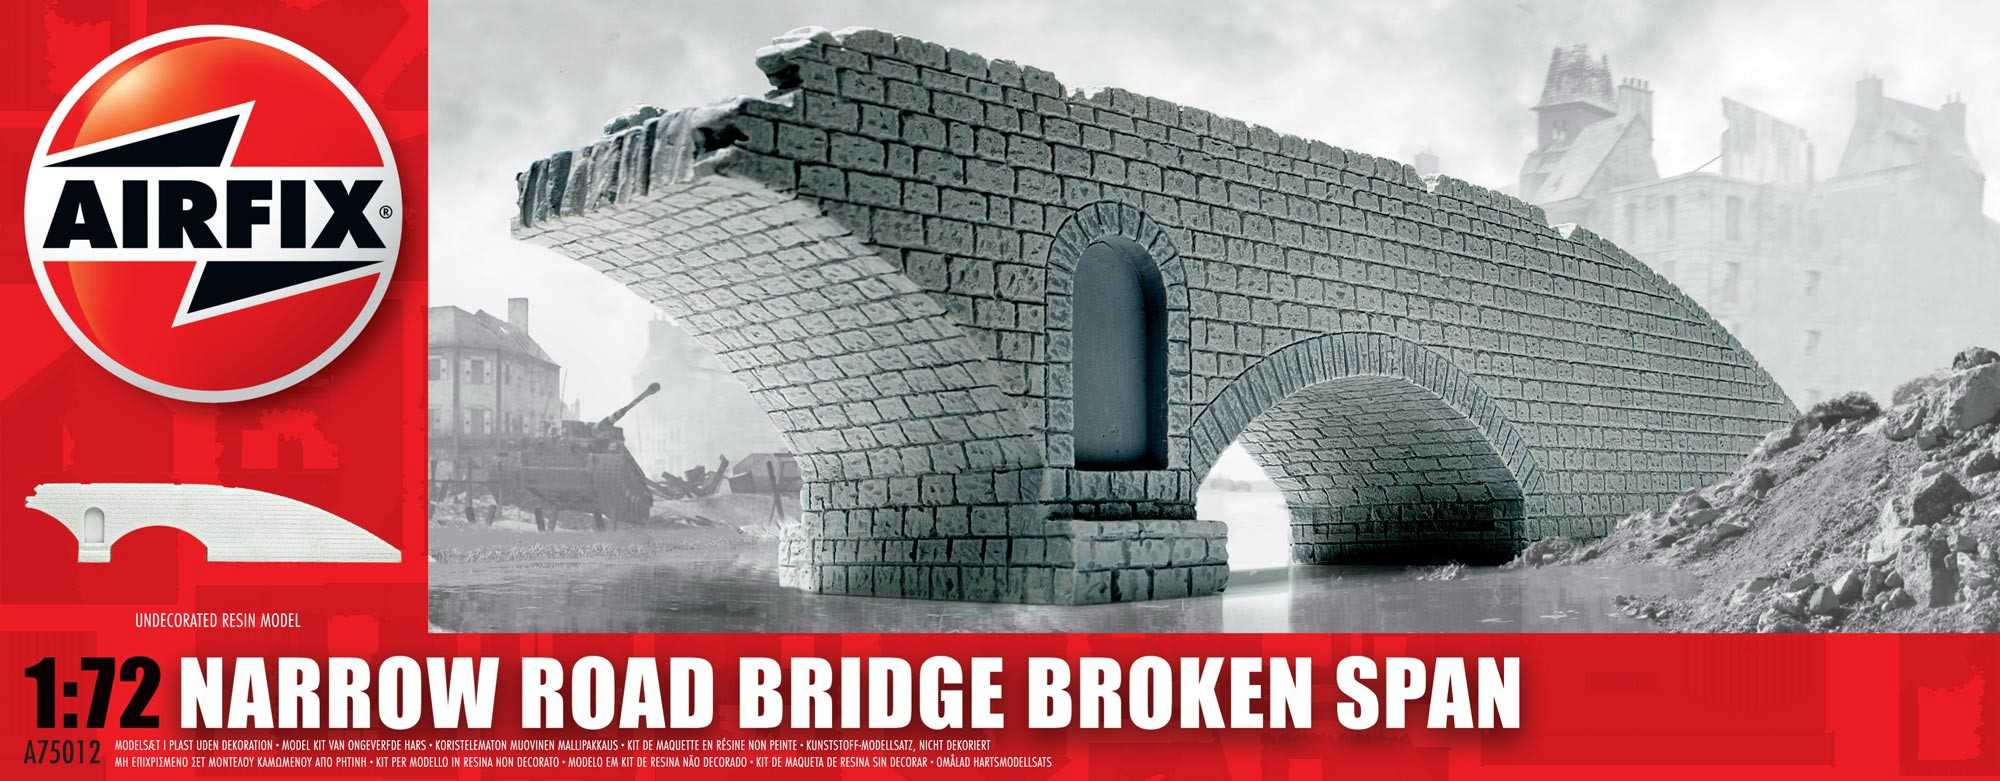 1:72 Narrow Road Bridge Broken Span